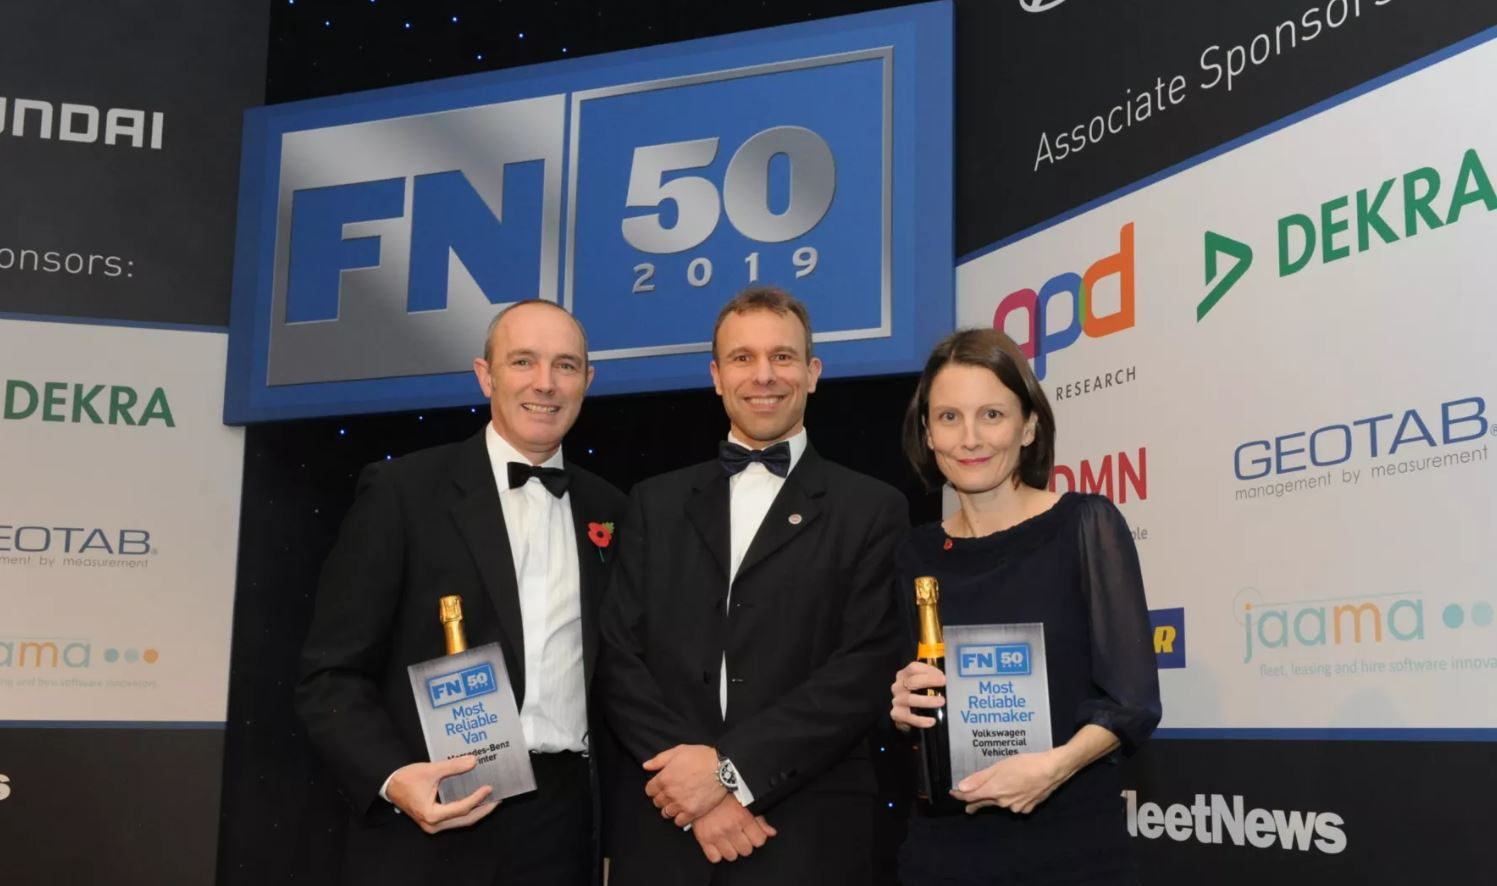 Volkswagen Commercial Vehicles Named Most Reliable Vanmaker At FN50 Awards